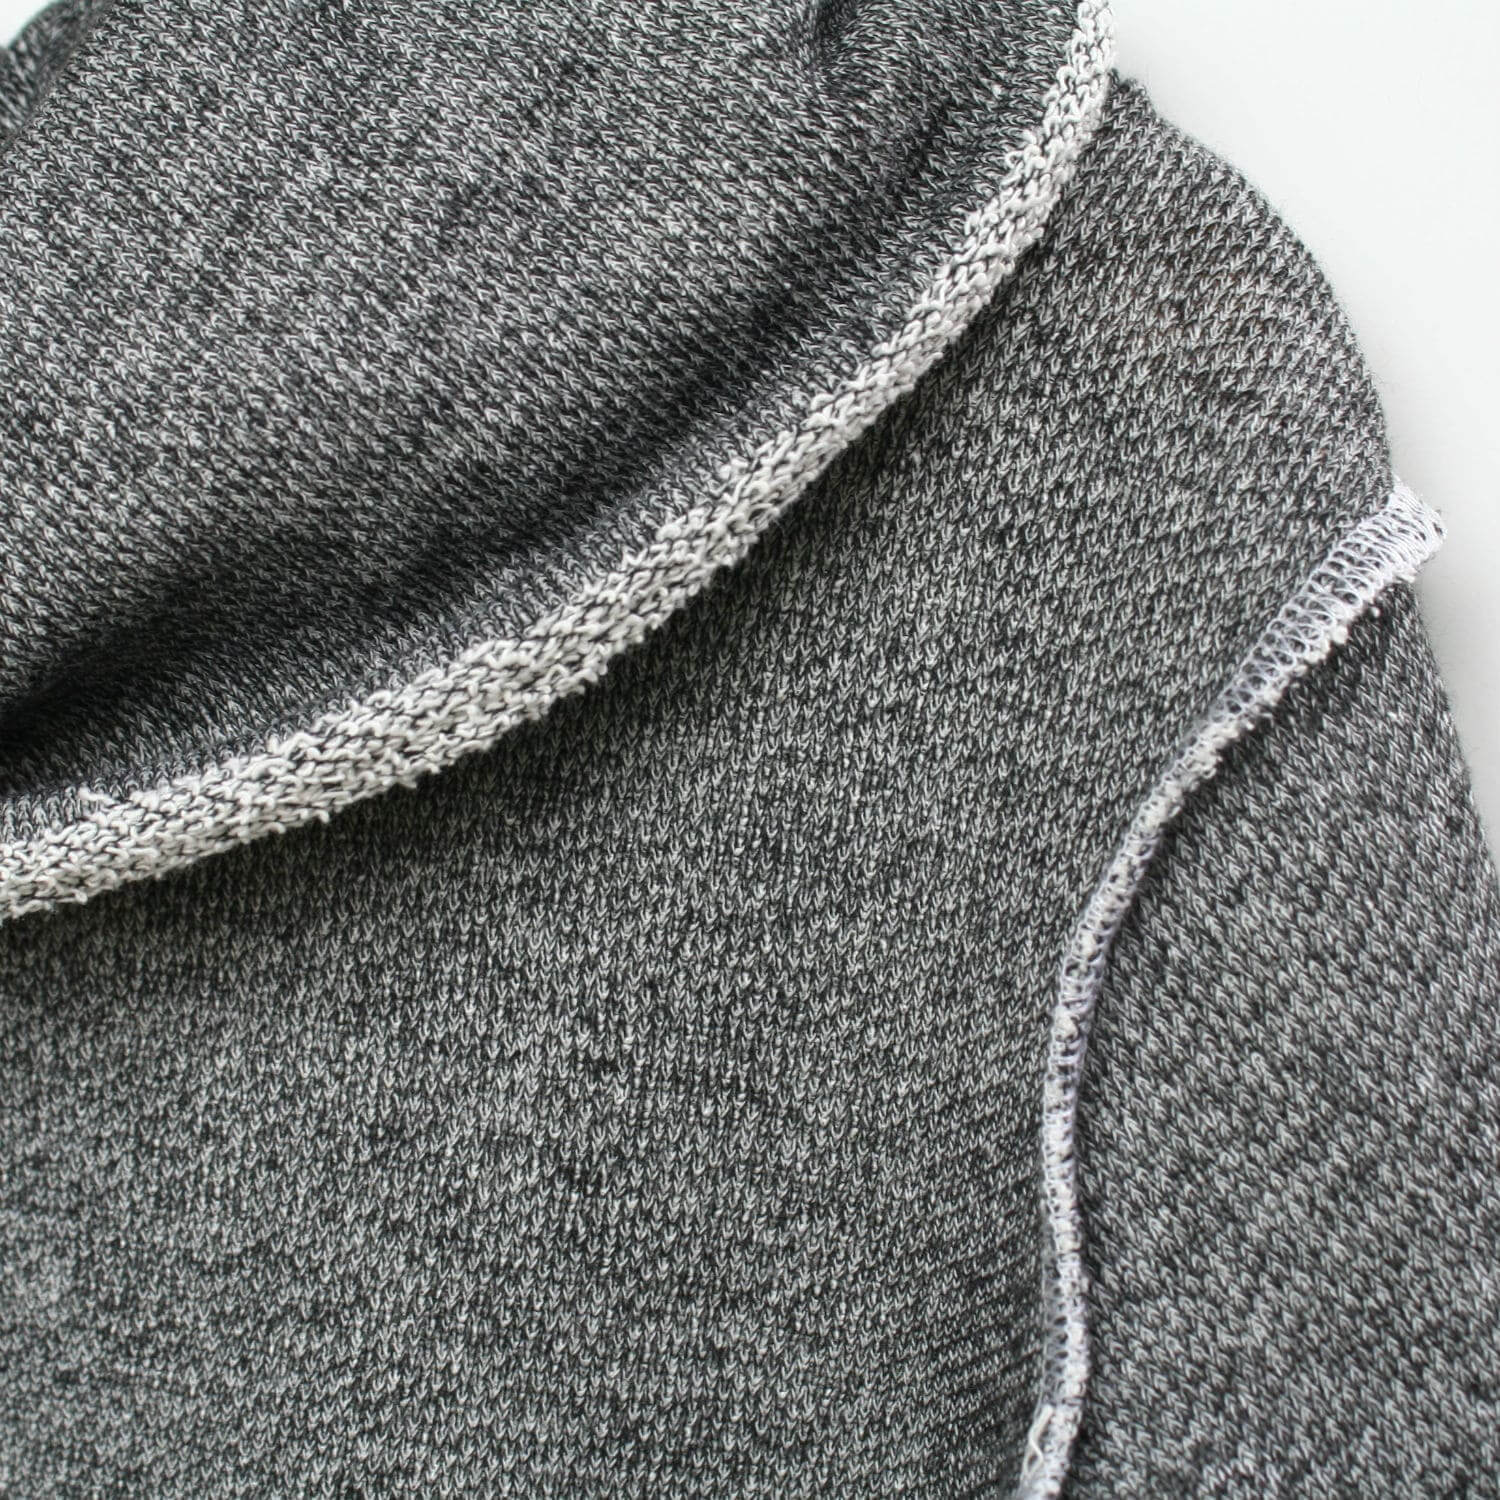 Details of the Jessie Granite Grey Cowl Sweater for kids by Mini Street